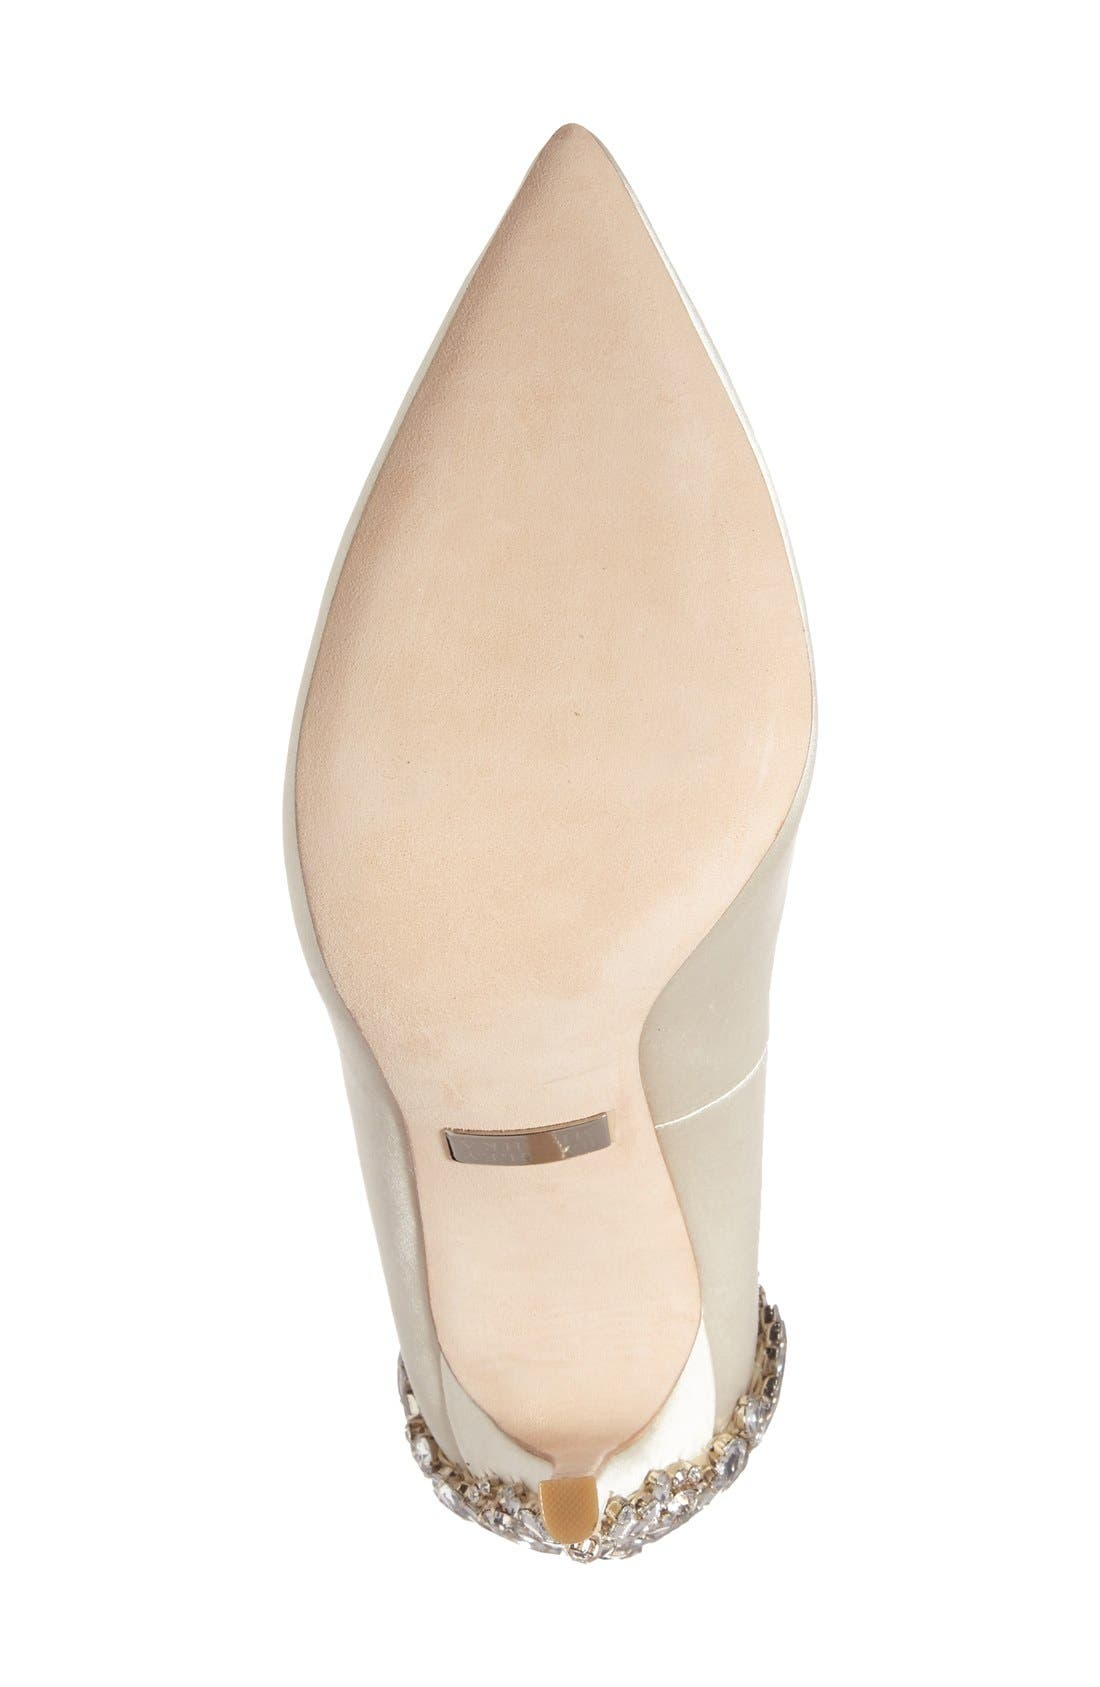 'Gorgeous' Crystal Embellished Pointy Toe Pump,                             Alternate thumbnail 4, color,                             Ivory Satin